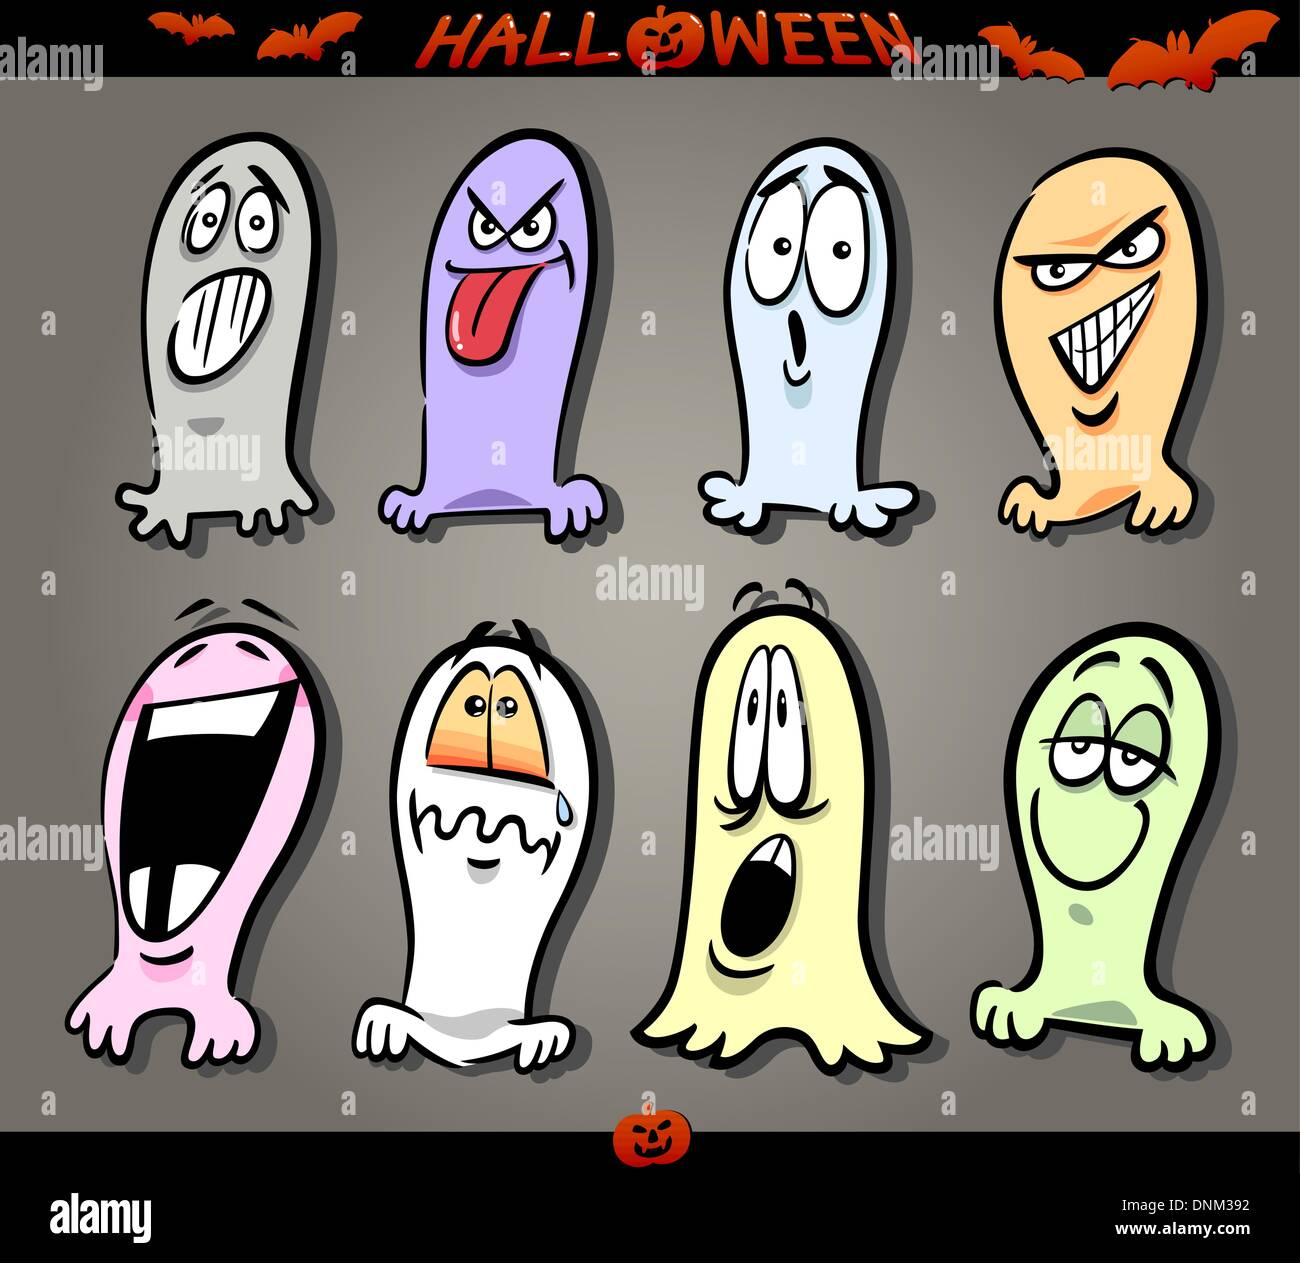 cartoon illustration of halloween themes ghosts emotions funny set